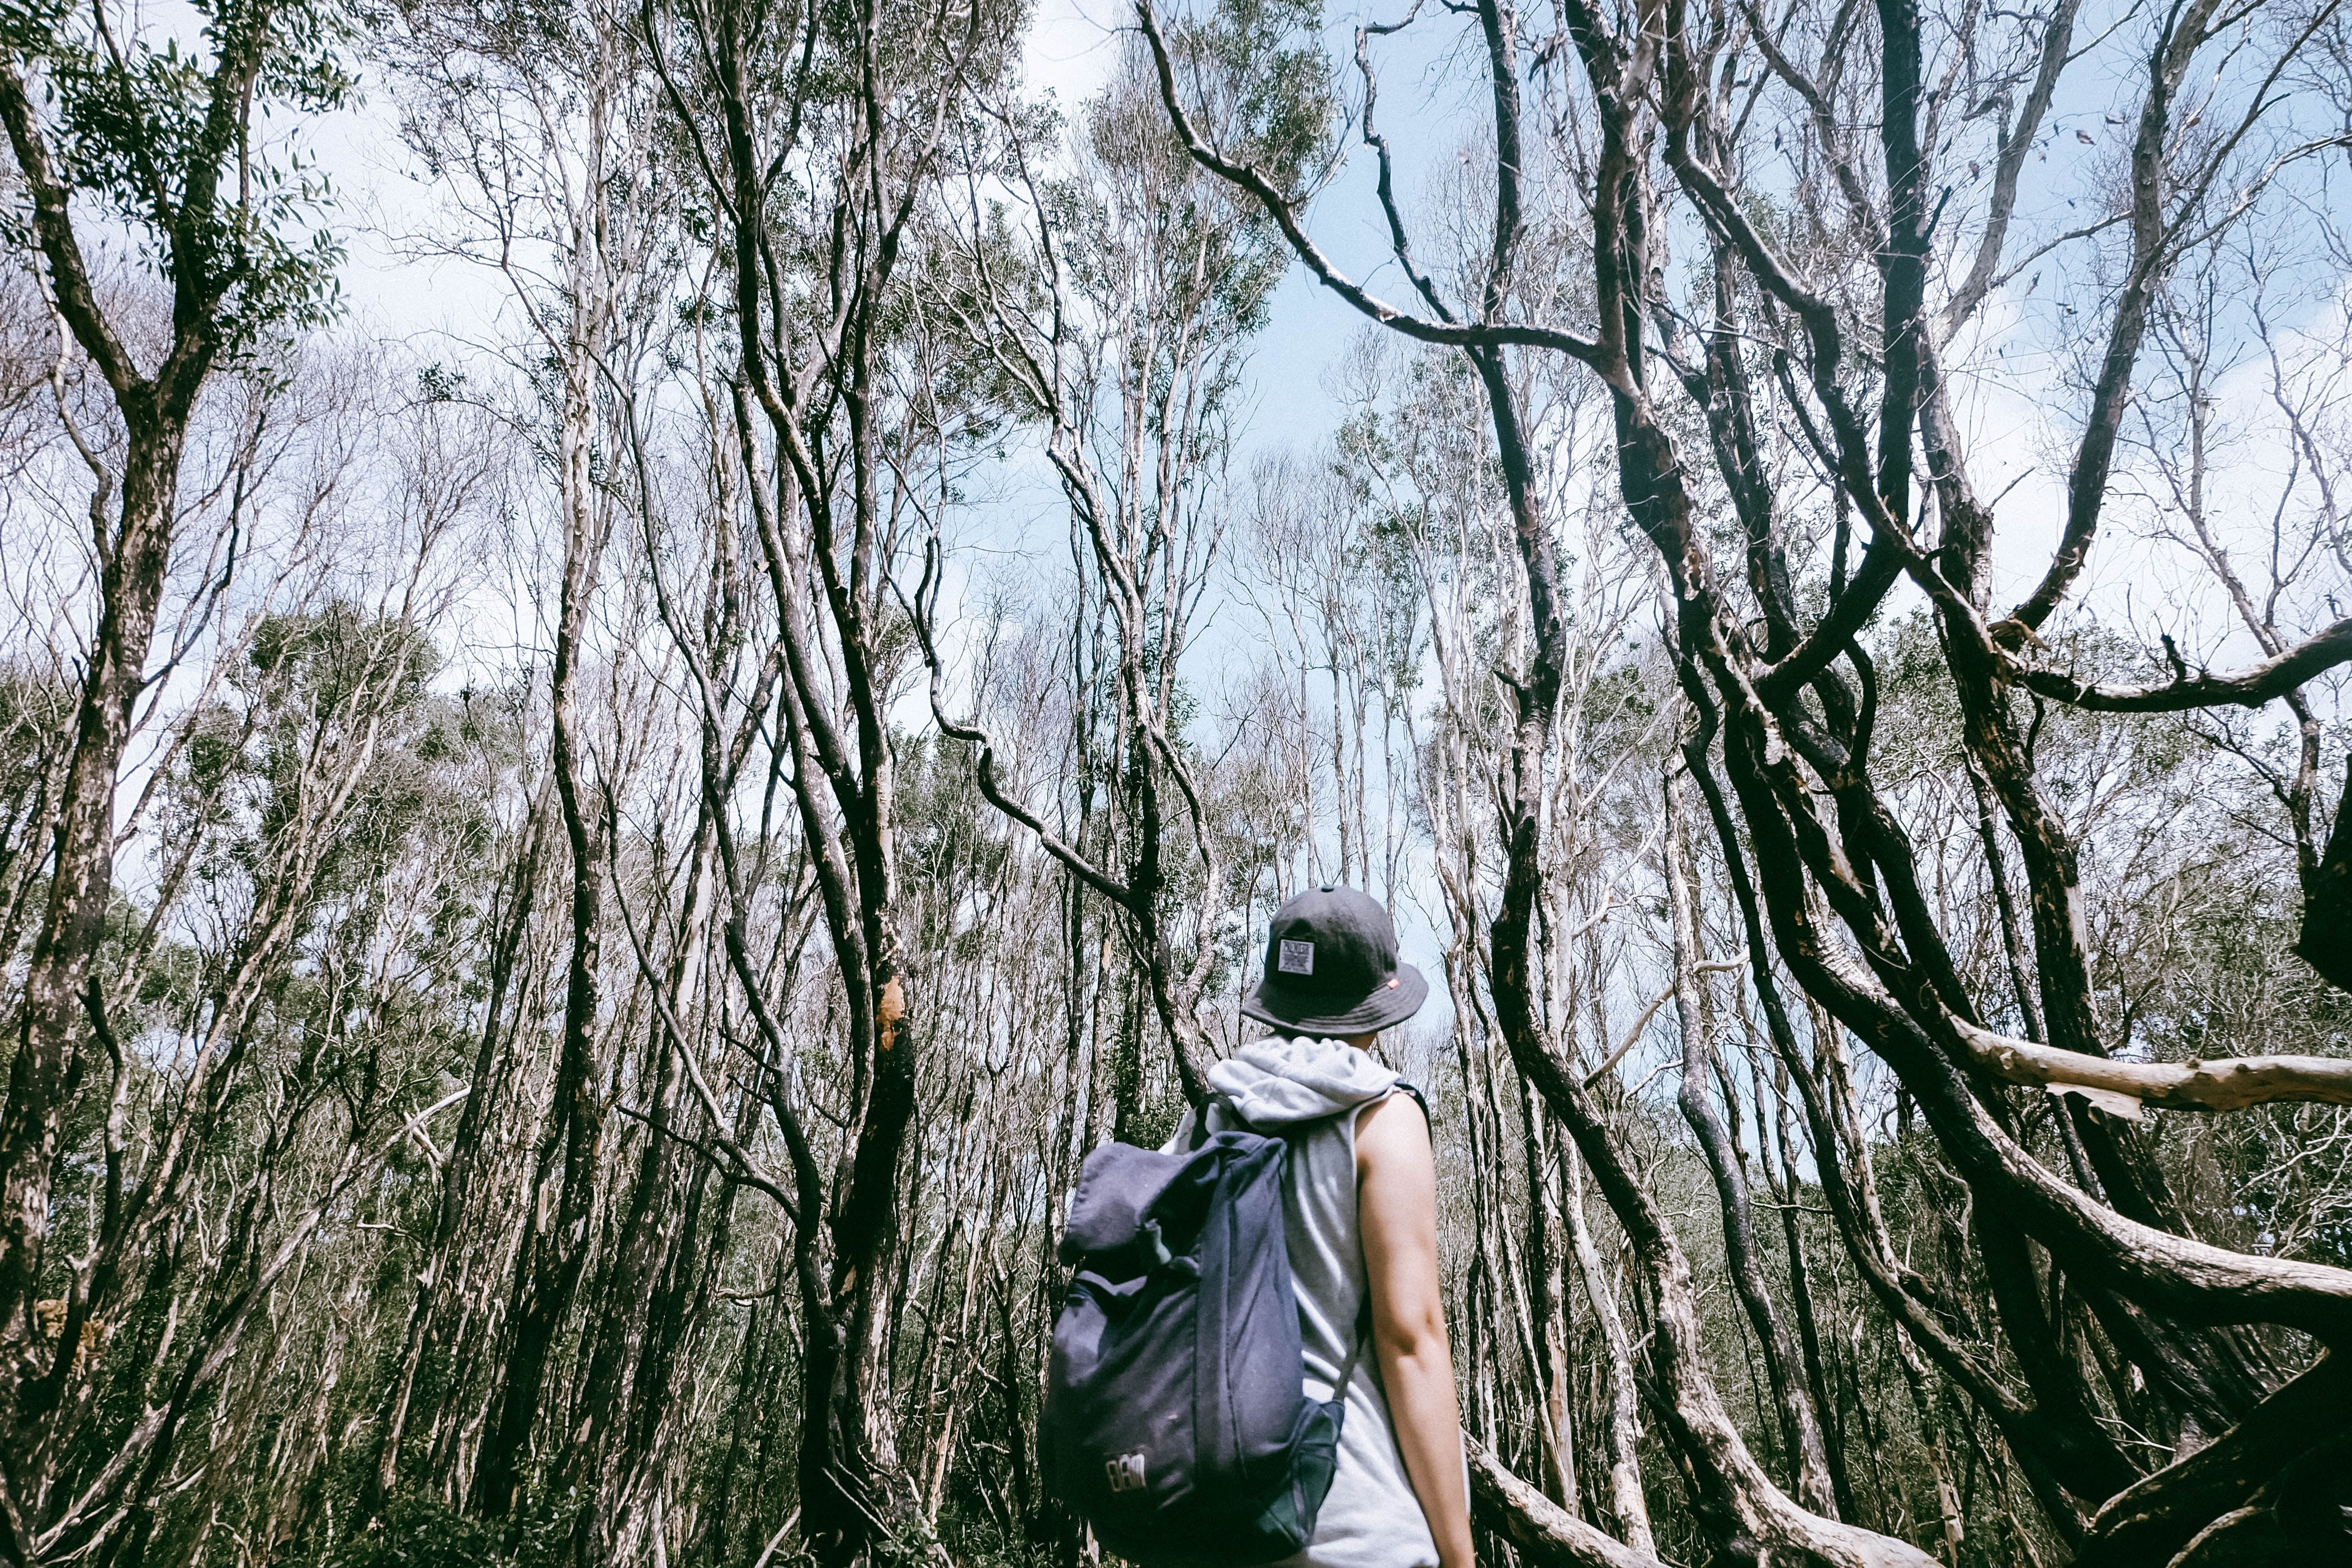 man carrying black backpack surrounded by trees at daytime